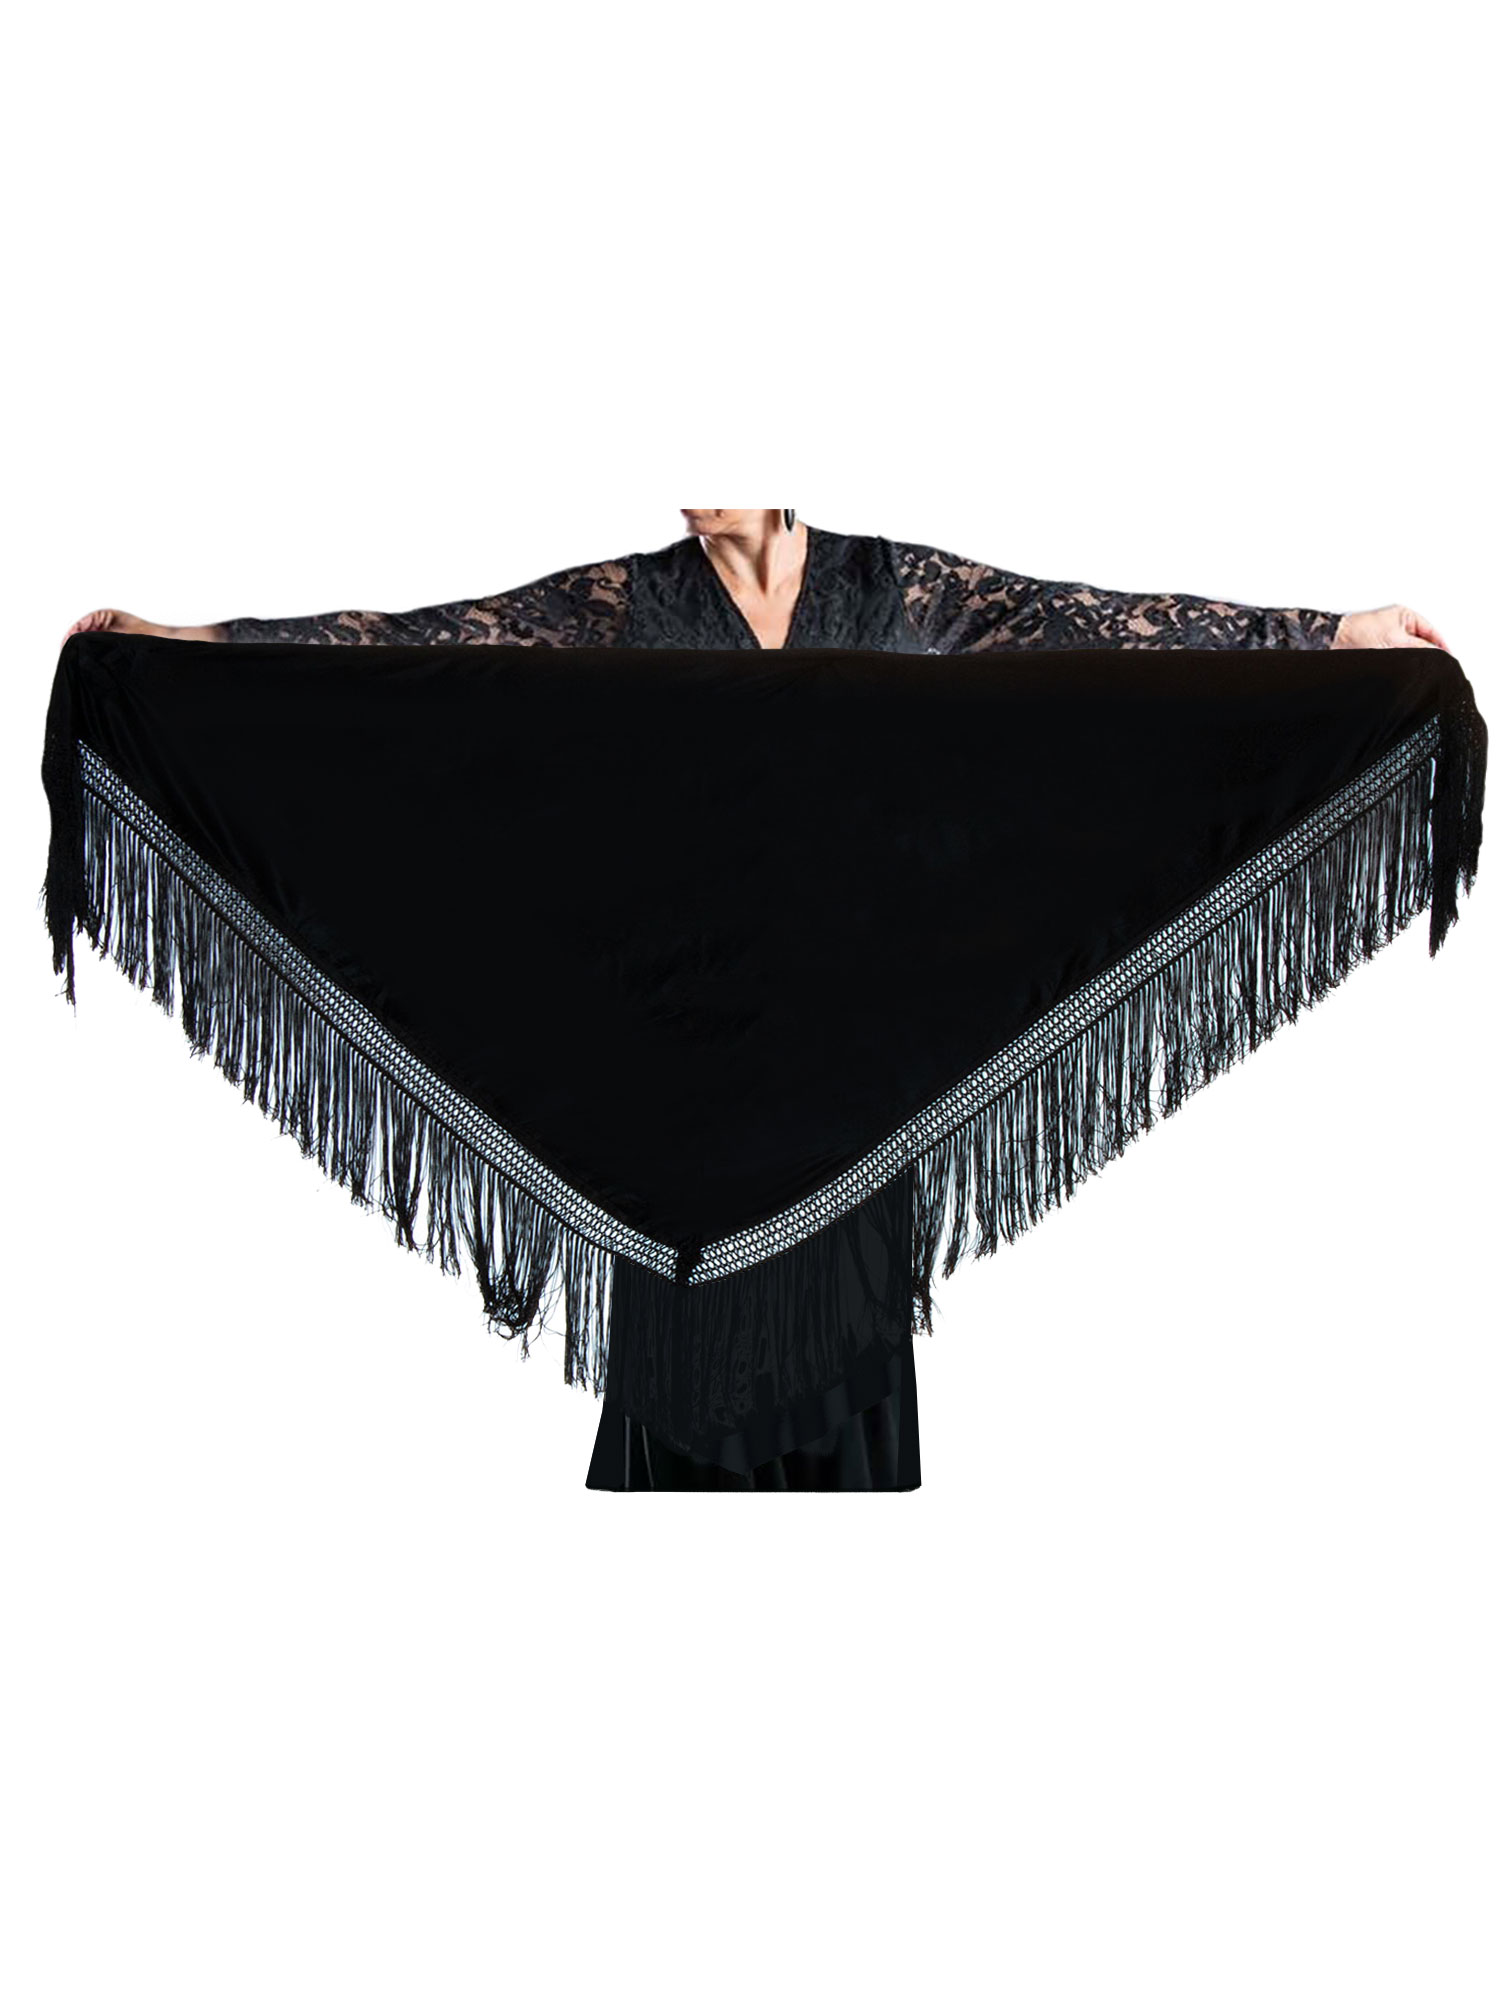 flamenco shawl black 150 x 70